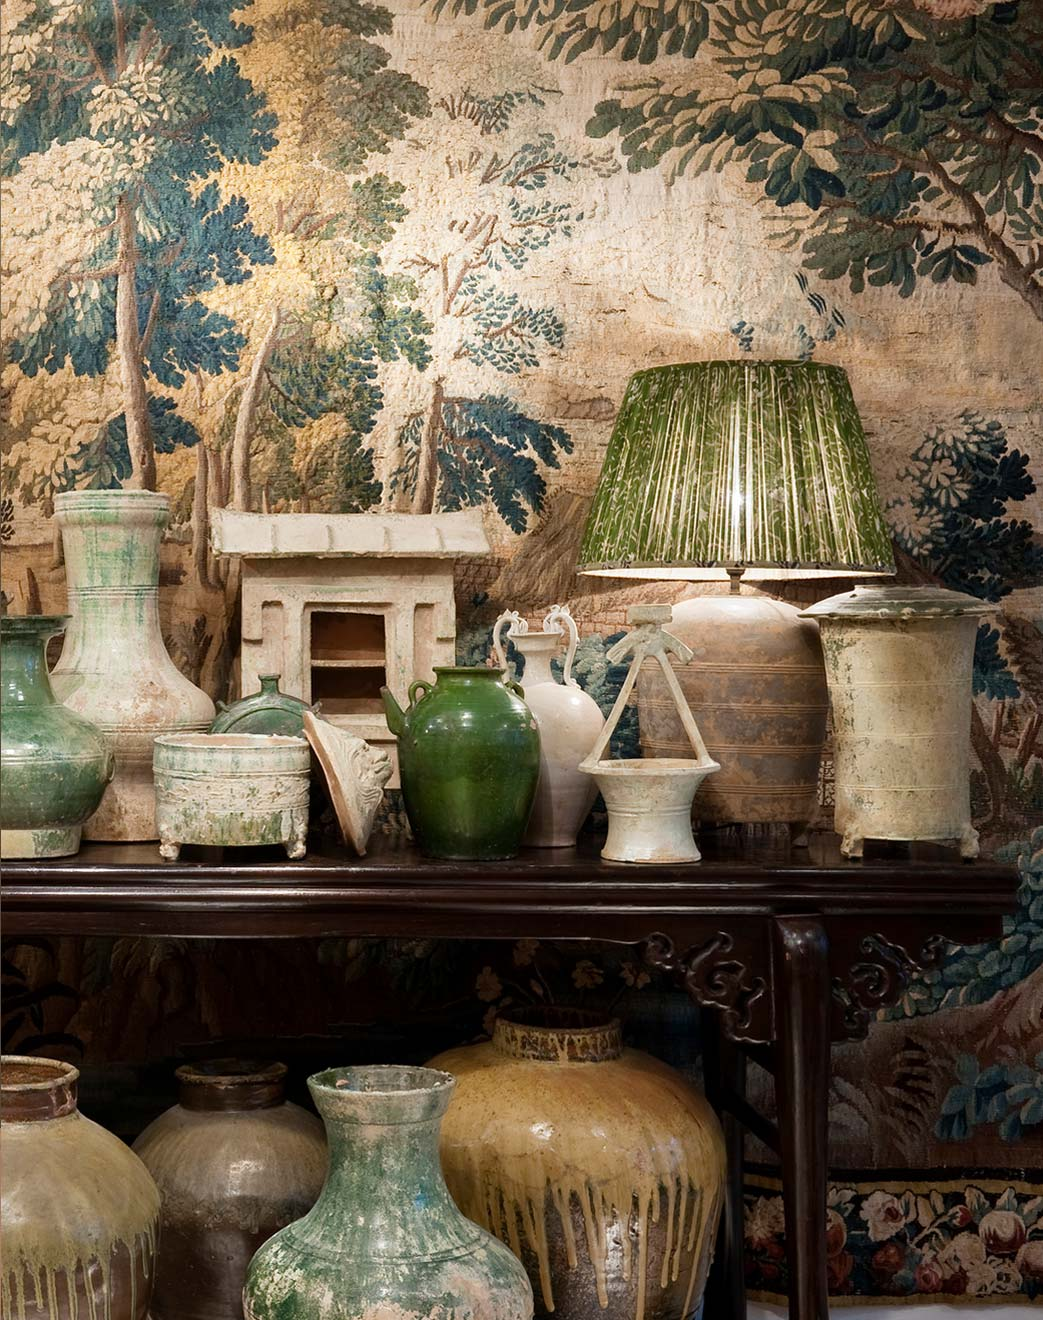 Lamp and other vintage decorative pieces in front of wall tapestry